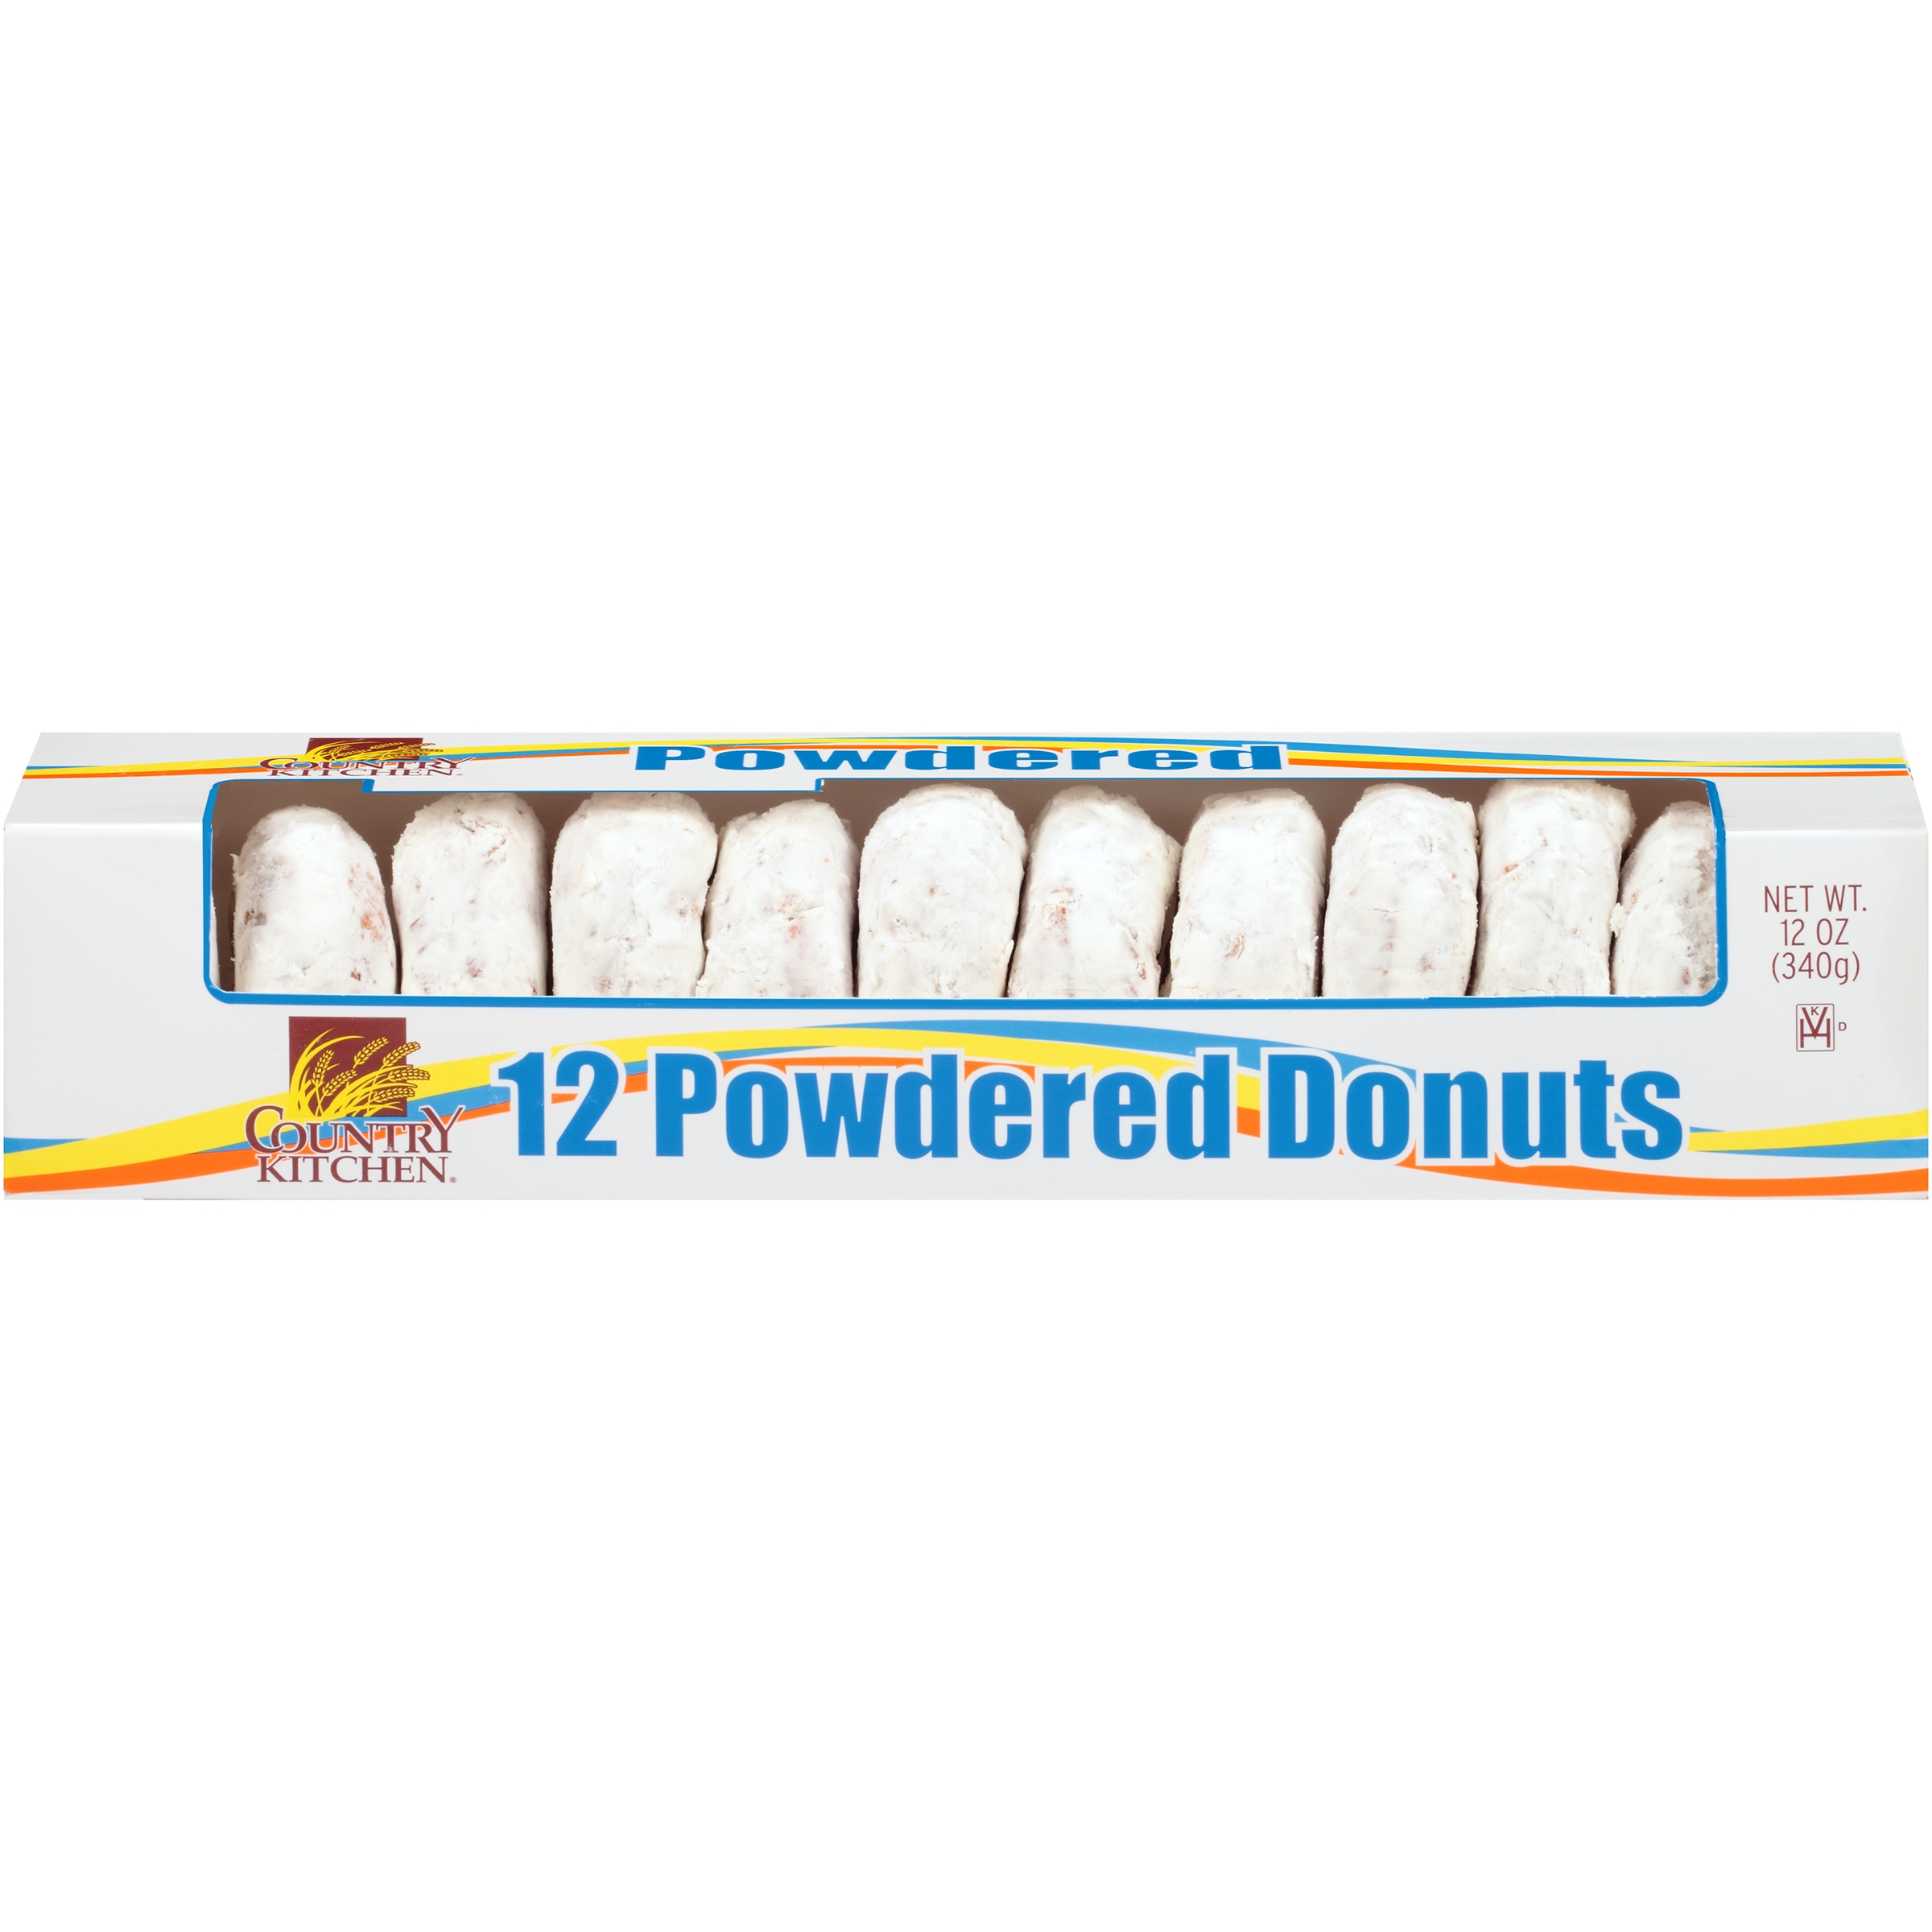 medium resolution of country kitchen powdered donuts 12 ct box walmart com pa wiring diagram donut ct wiring diagram